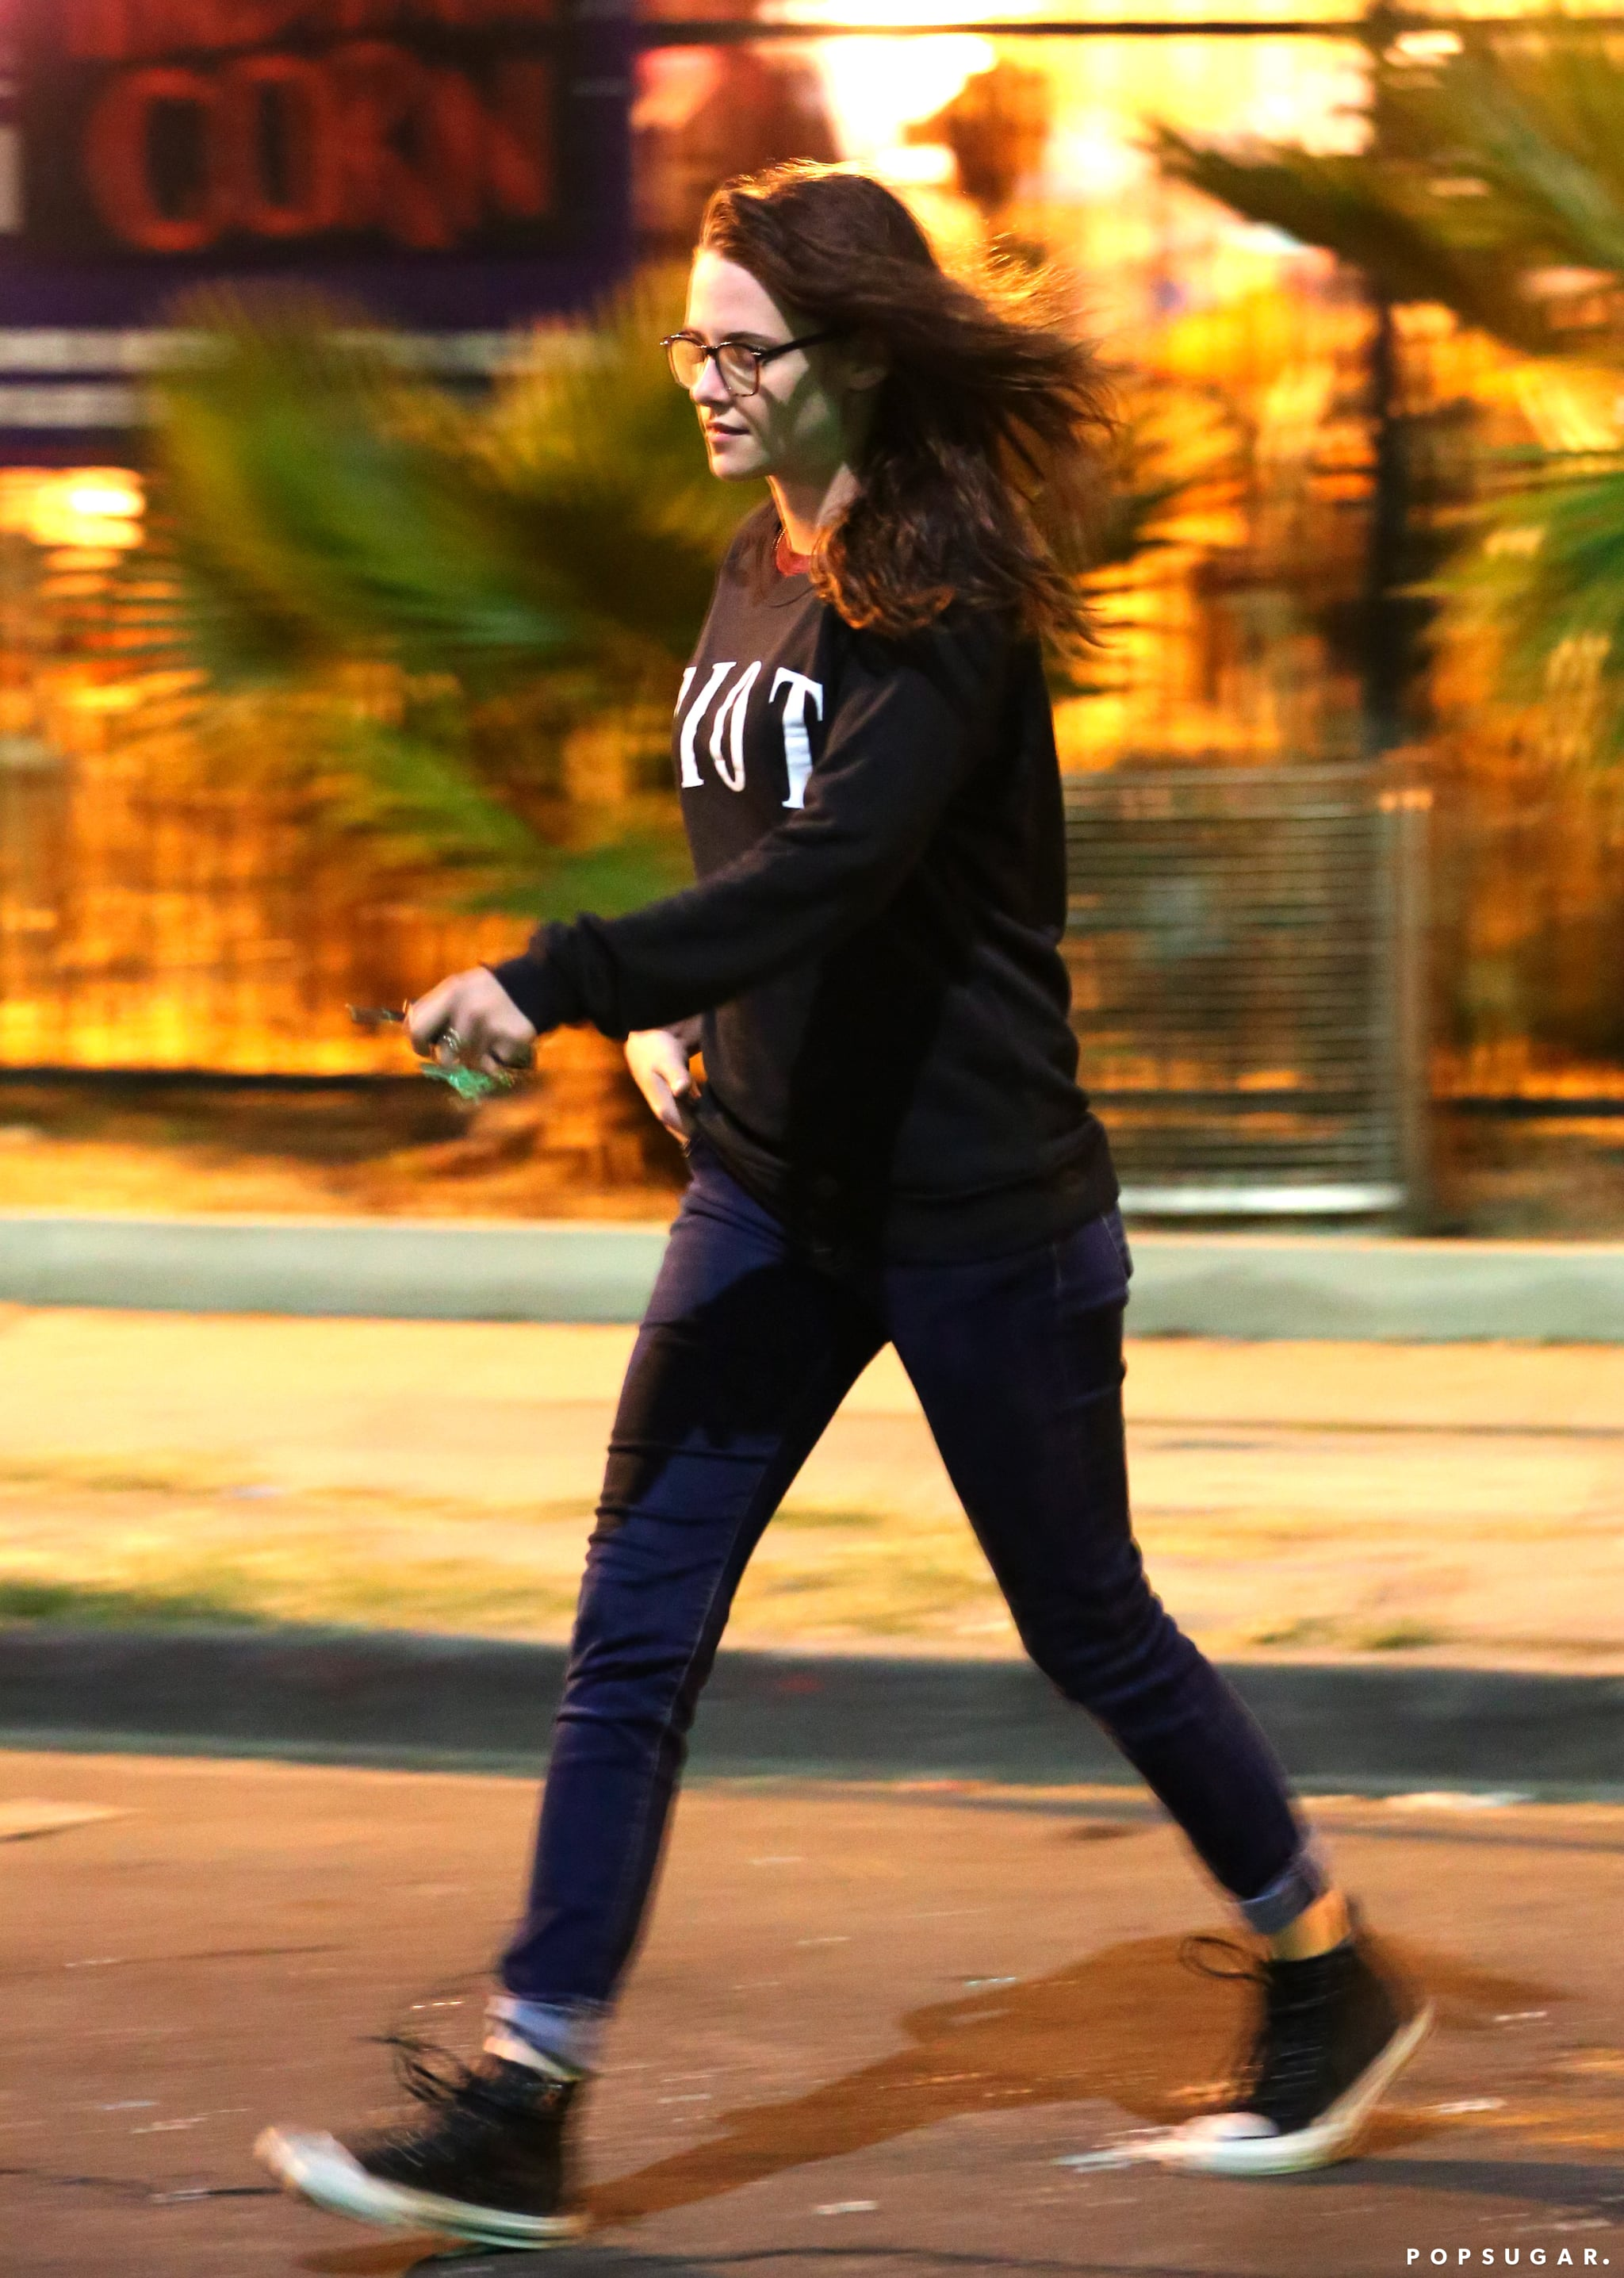 Kristen Stewart smiled while heading to a pumpkin patch.